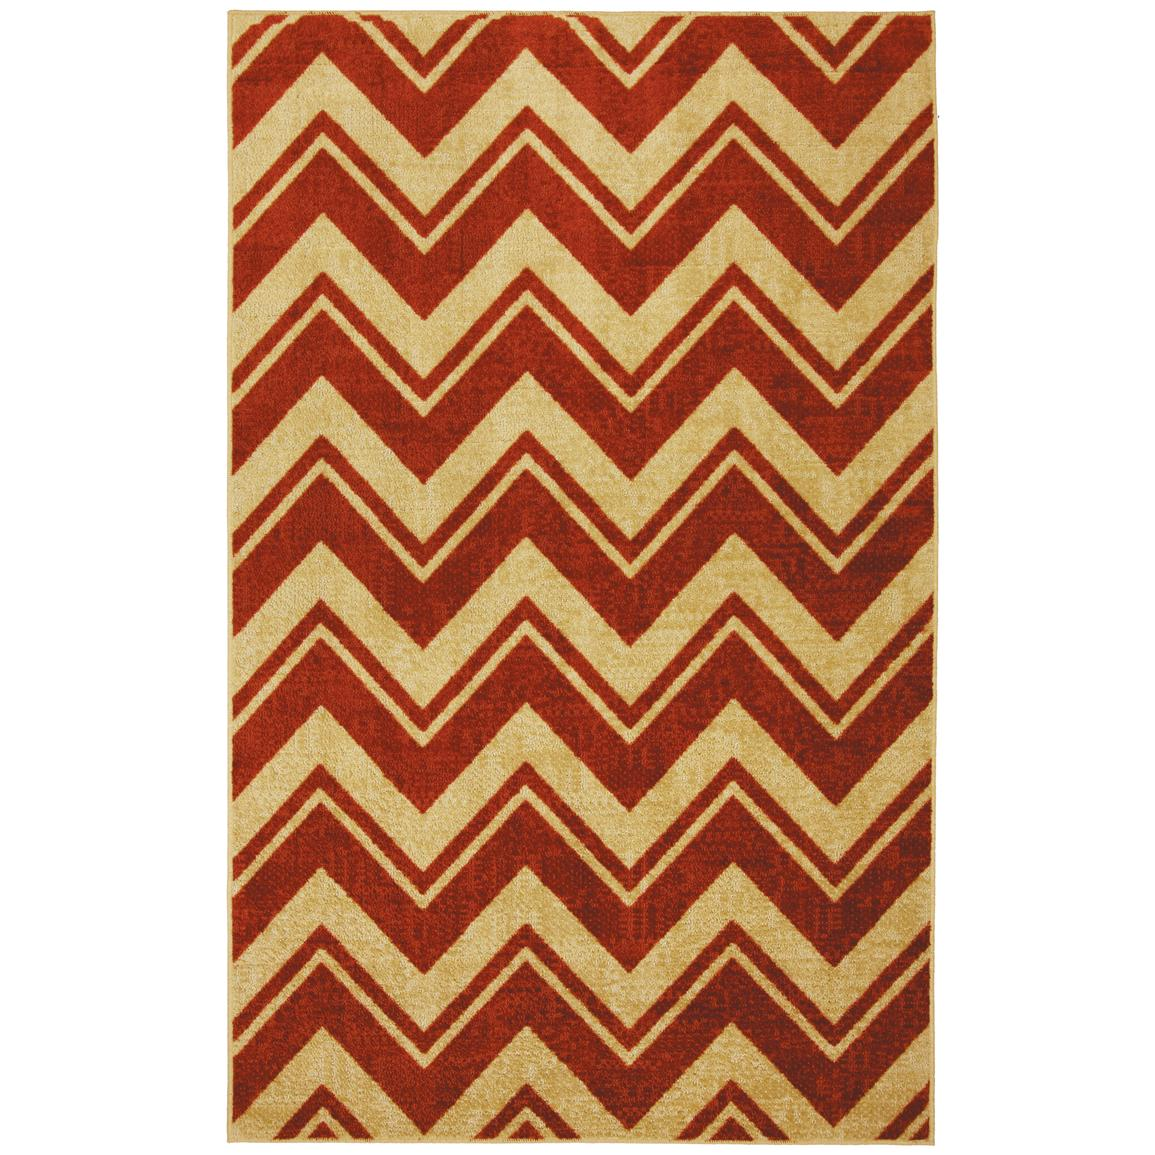 Mohawk Home® 5x8 foot Lascala Collection Area Rug, Rust